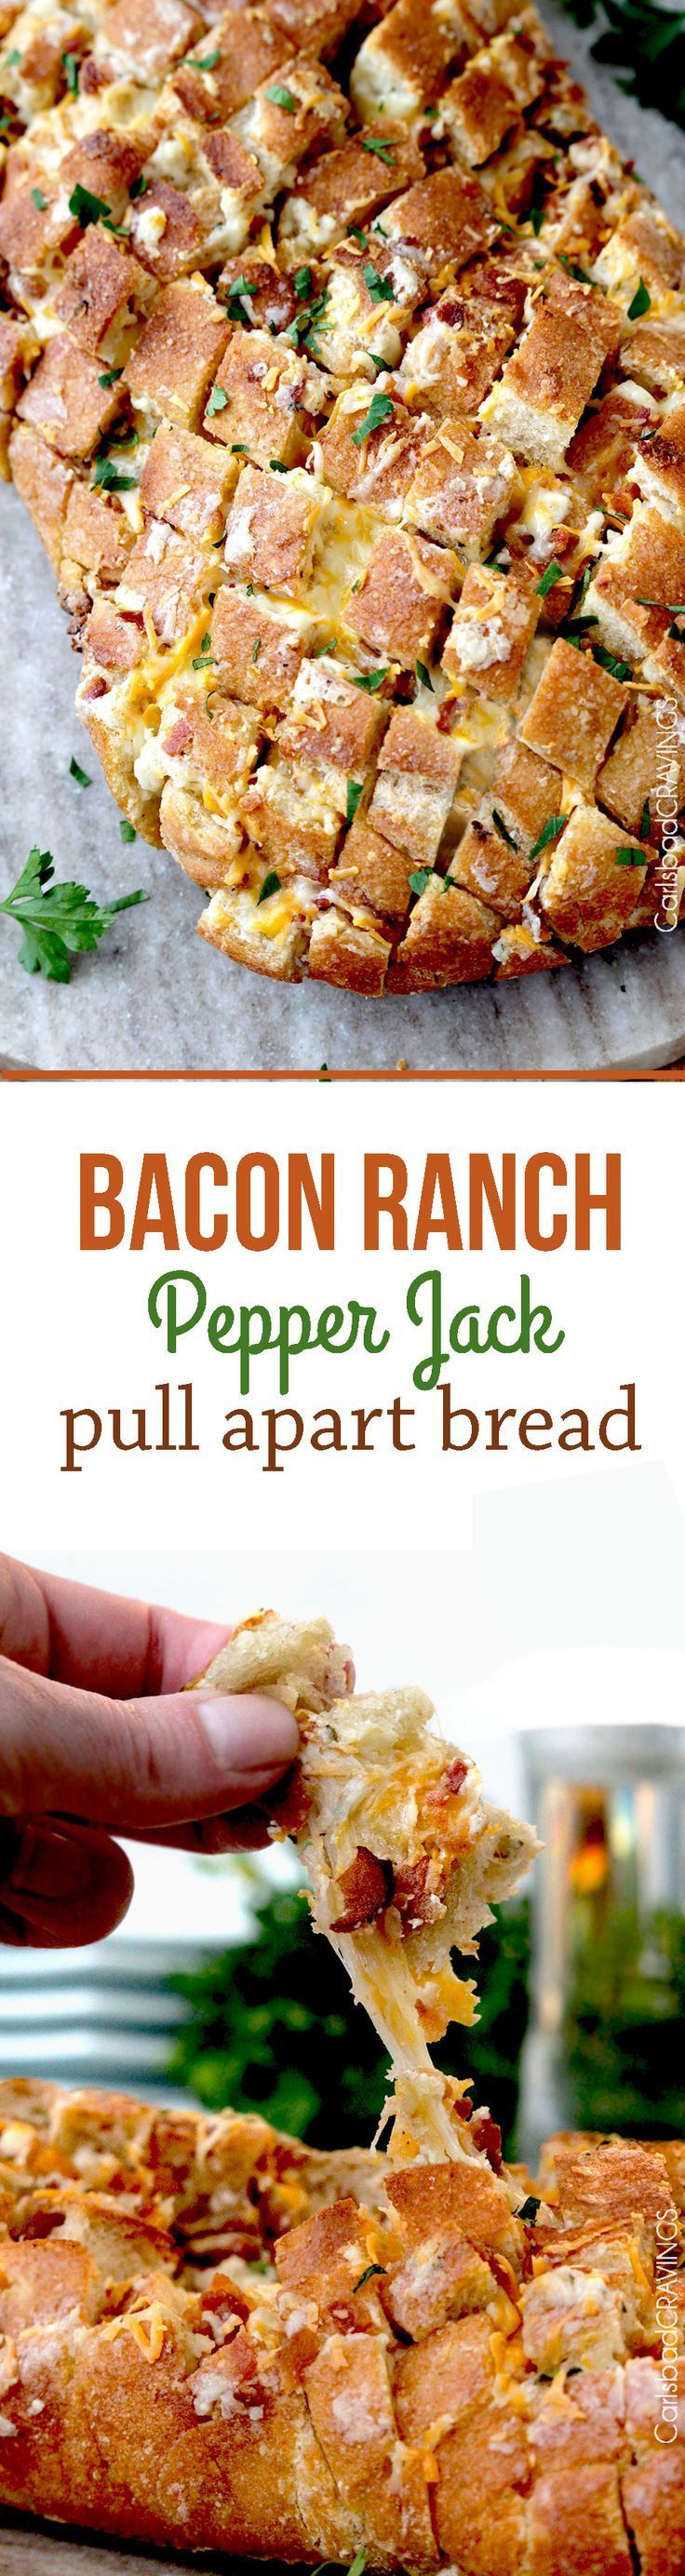 Bacon Ranch Pepper Jack Pull Apart Bread - drenched in buttery ranch cream  cheese then stuffed with bacon, sharp cheddar and pepper jack cheese.